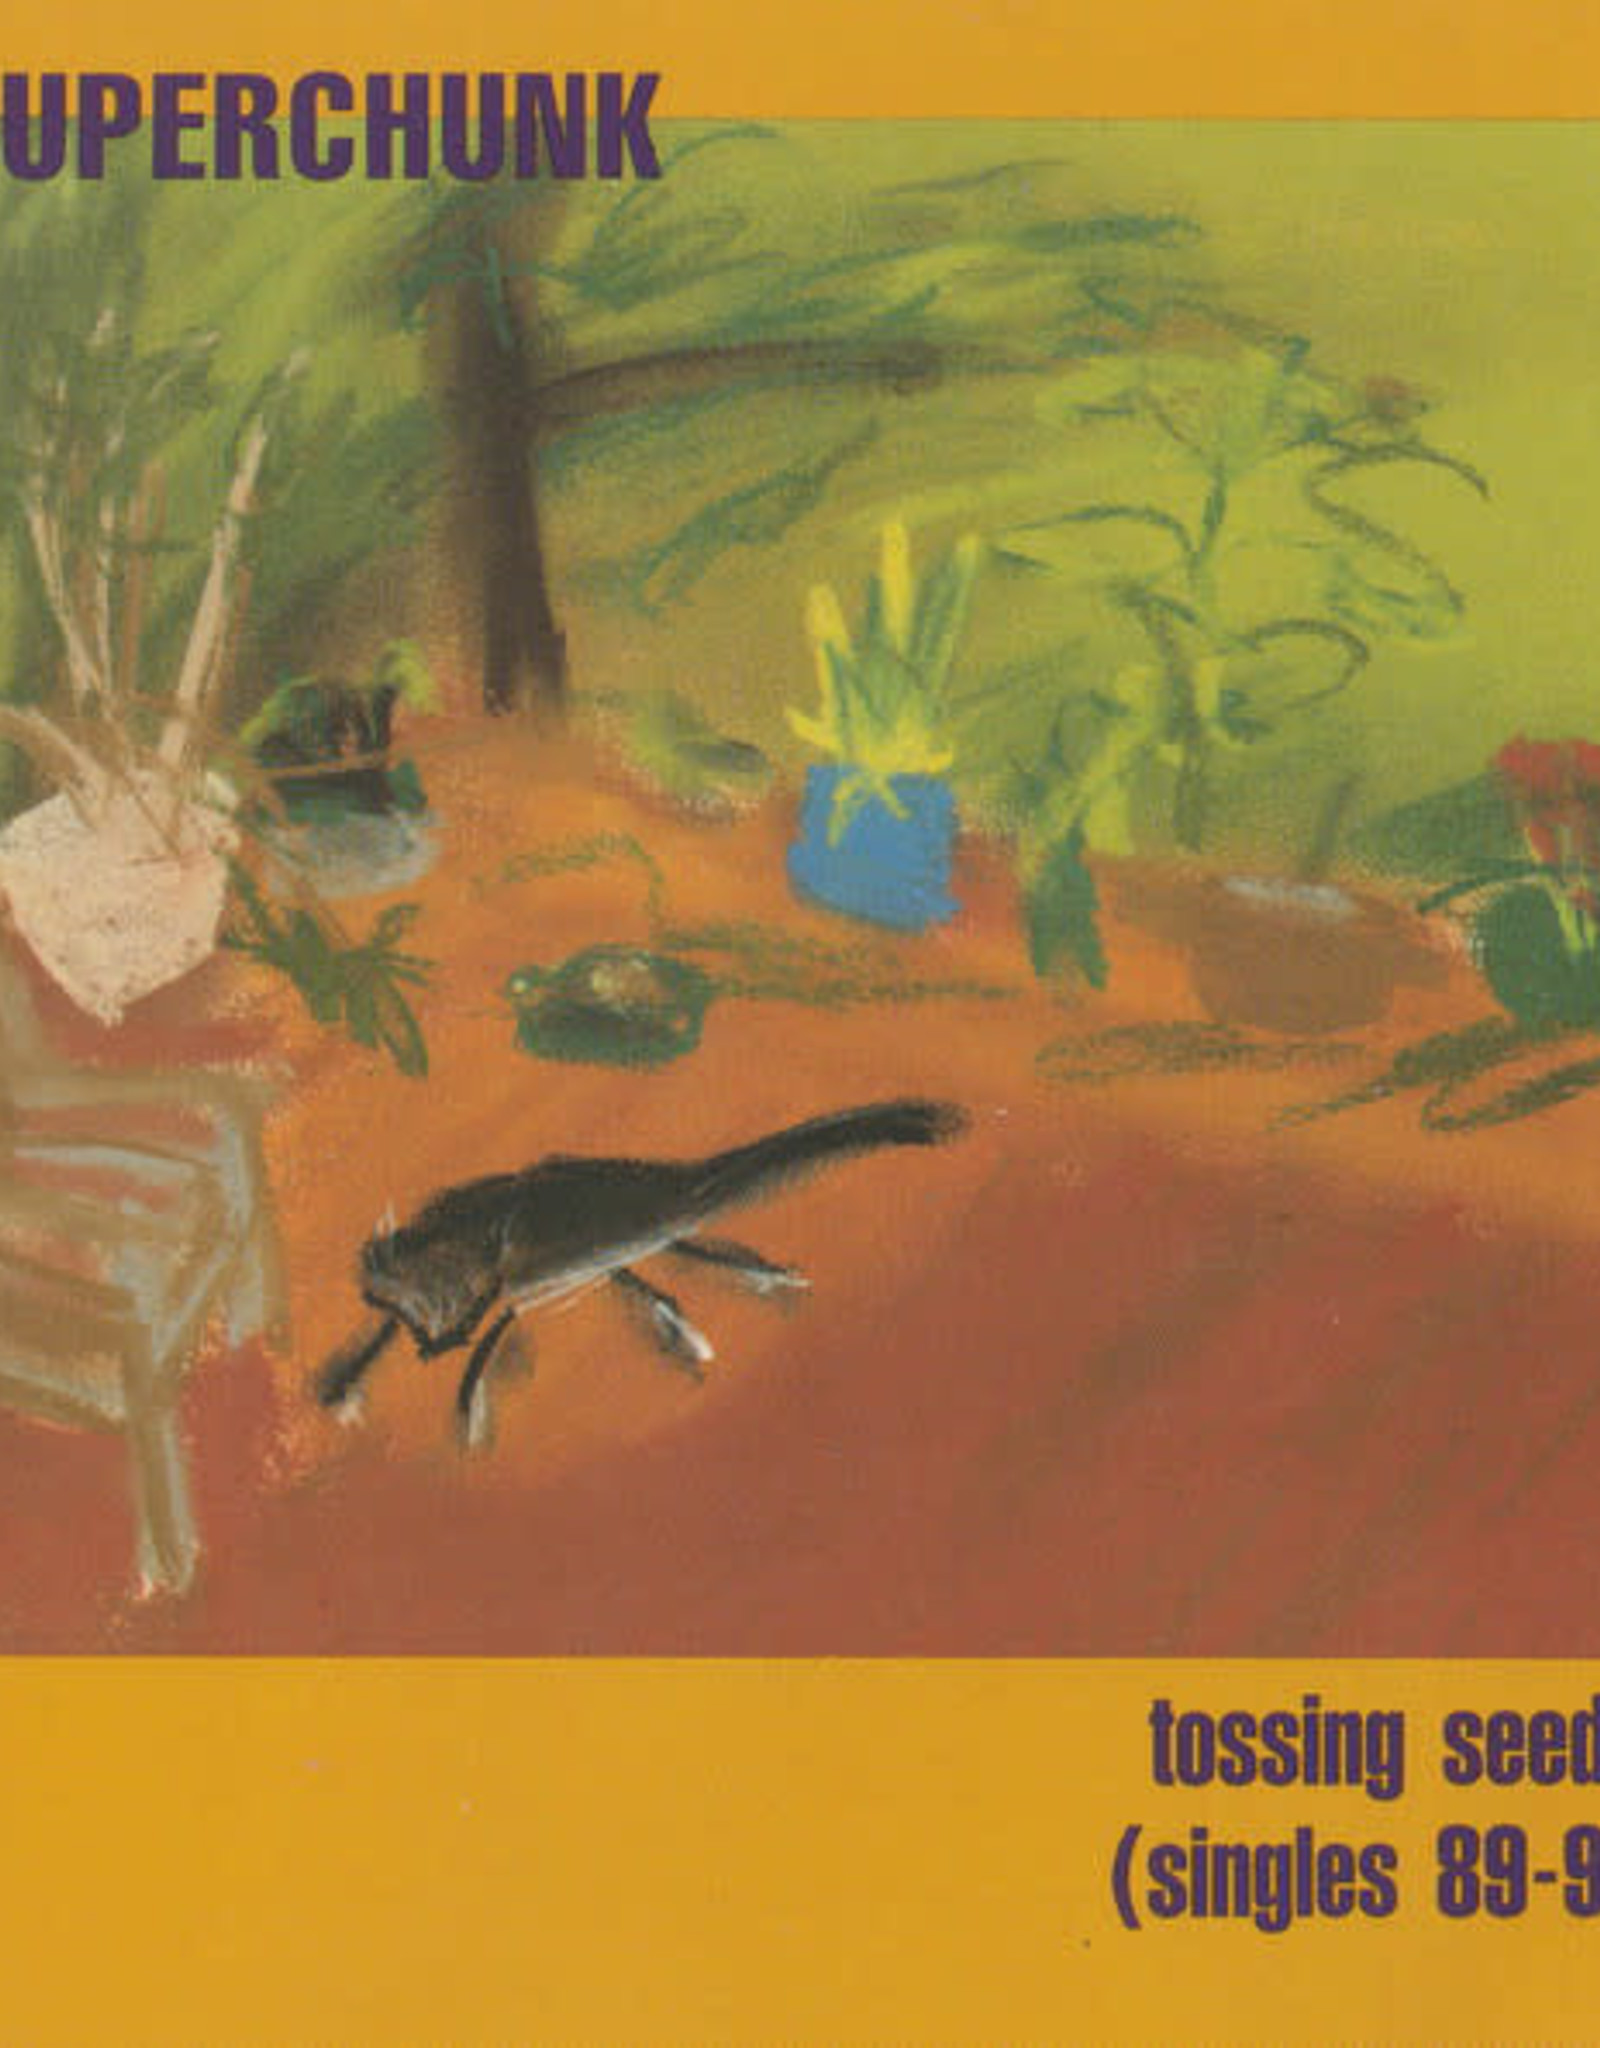 Superchunk - Tossing Seeds (Singles 1989-91)